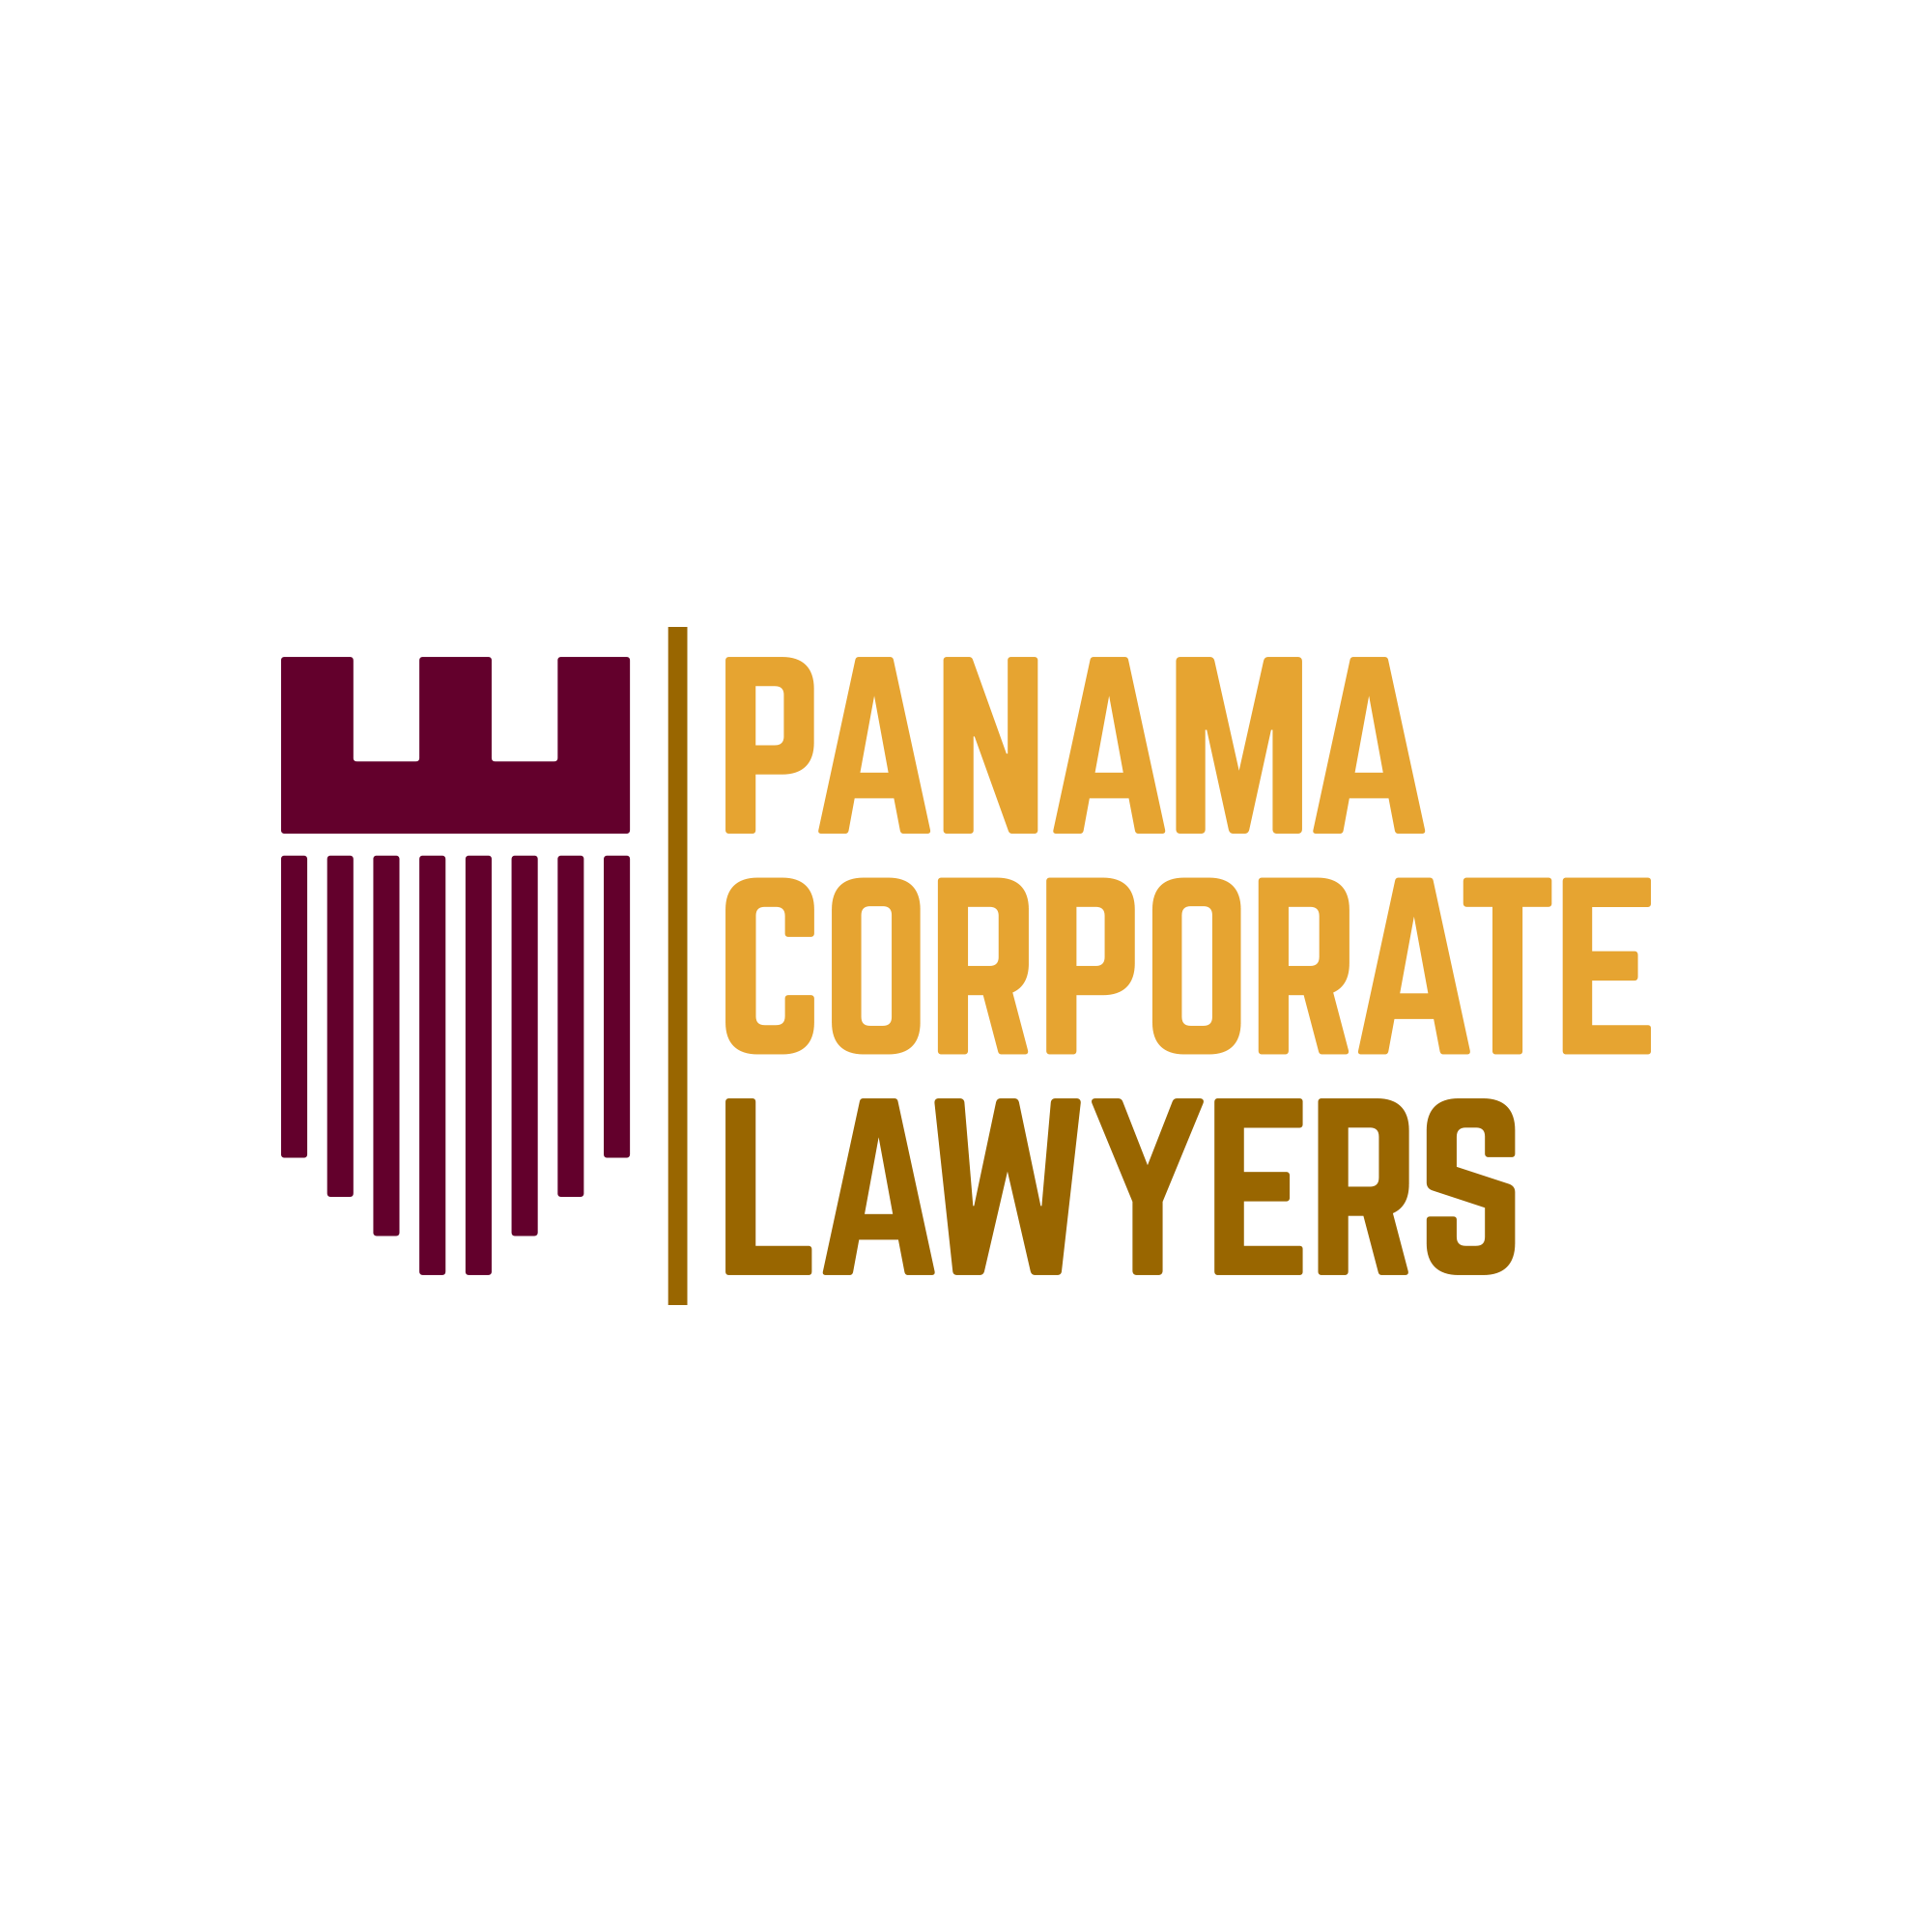 tl_files/Casos Exito/AFILIADOS/AFILIADO PANAMA CORPORATE L/LOGO CORPORATE PANAMA LAWYERS.png